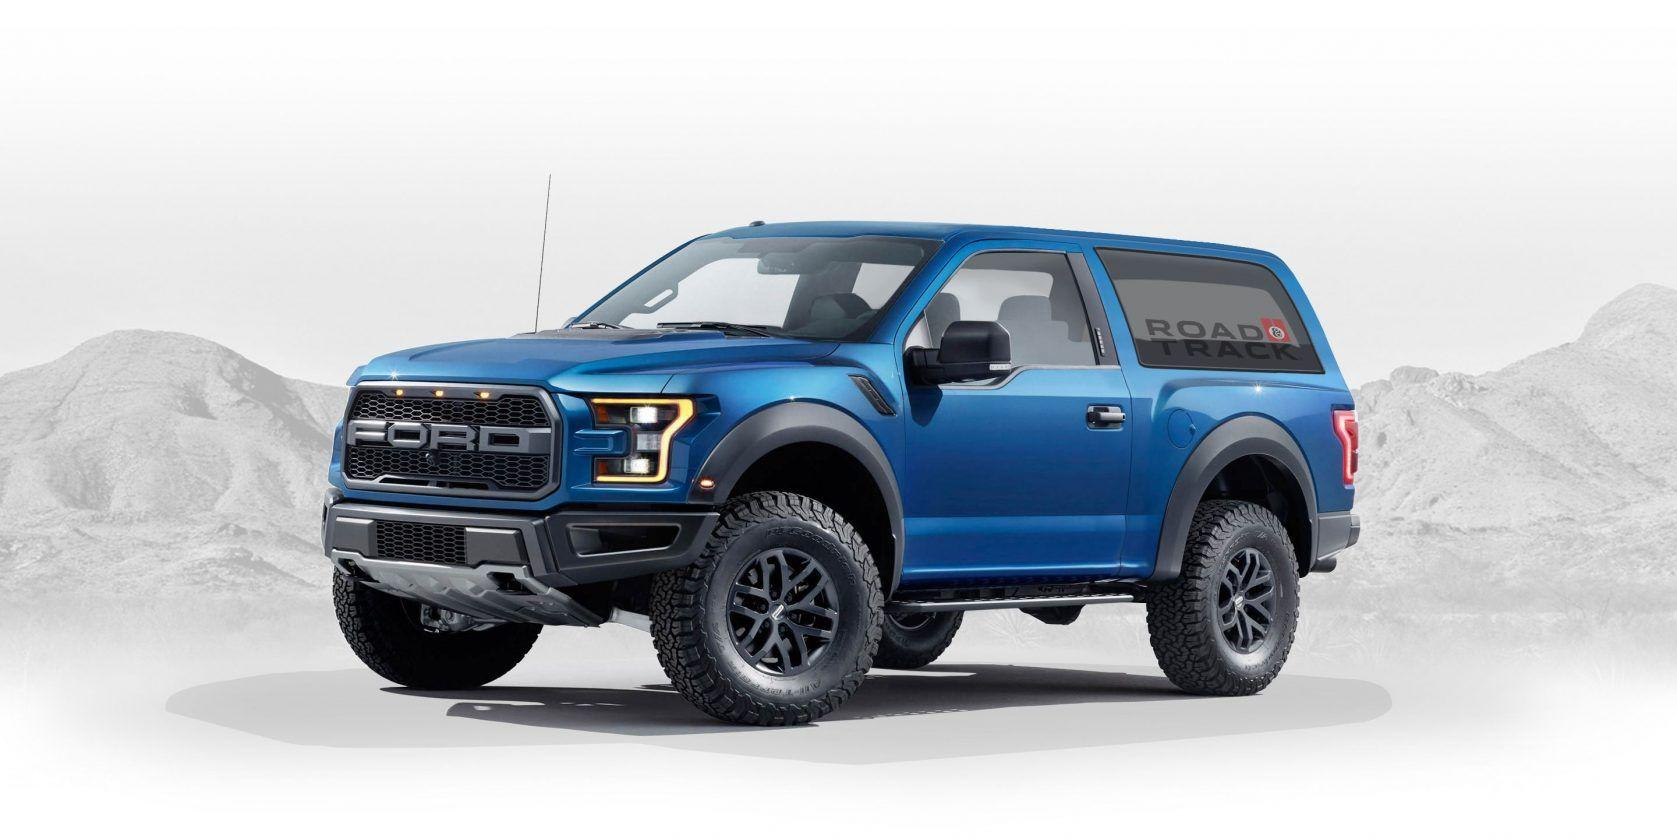 New 2020 Ford Bronco Look HD Wallpaper | Best New Car